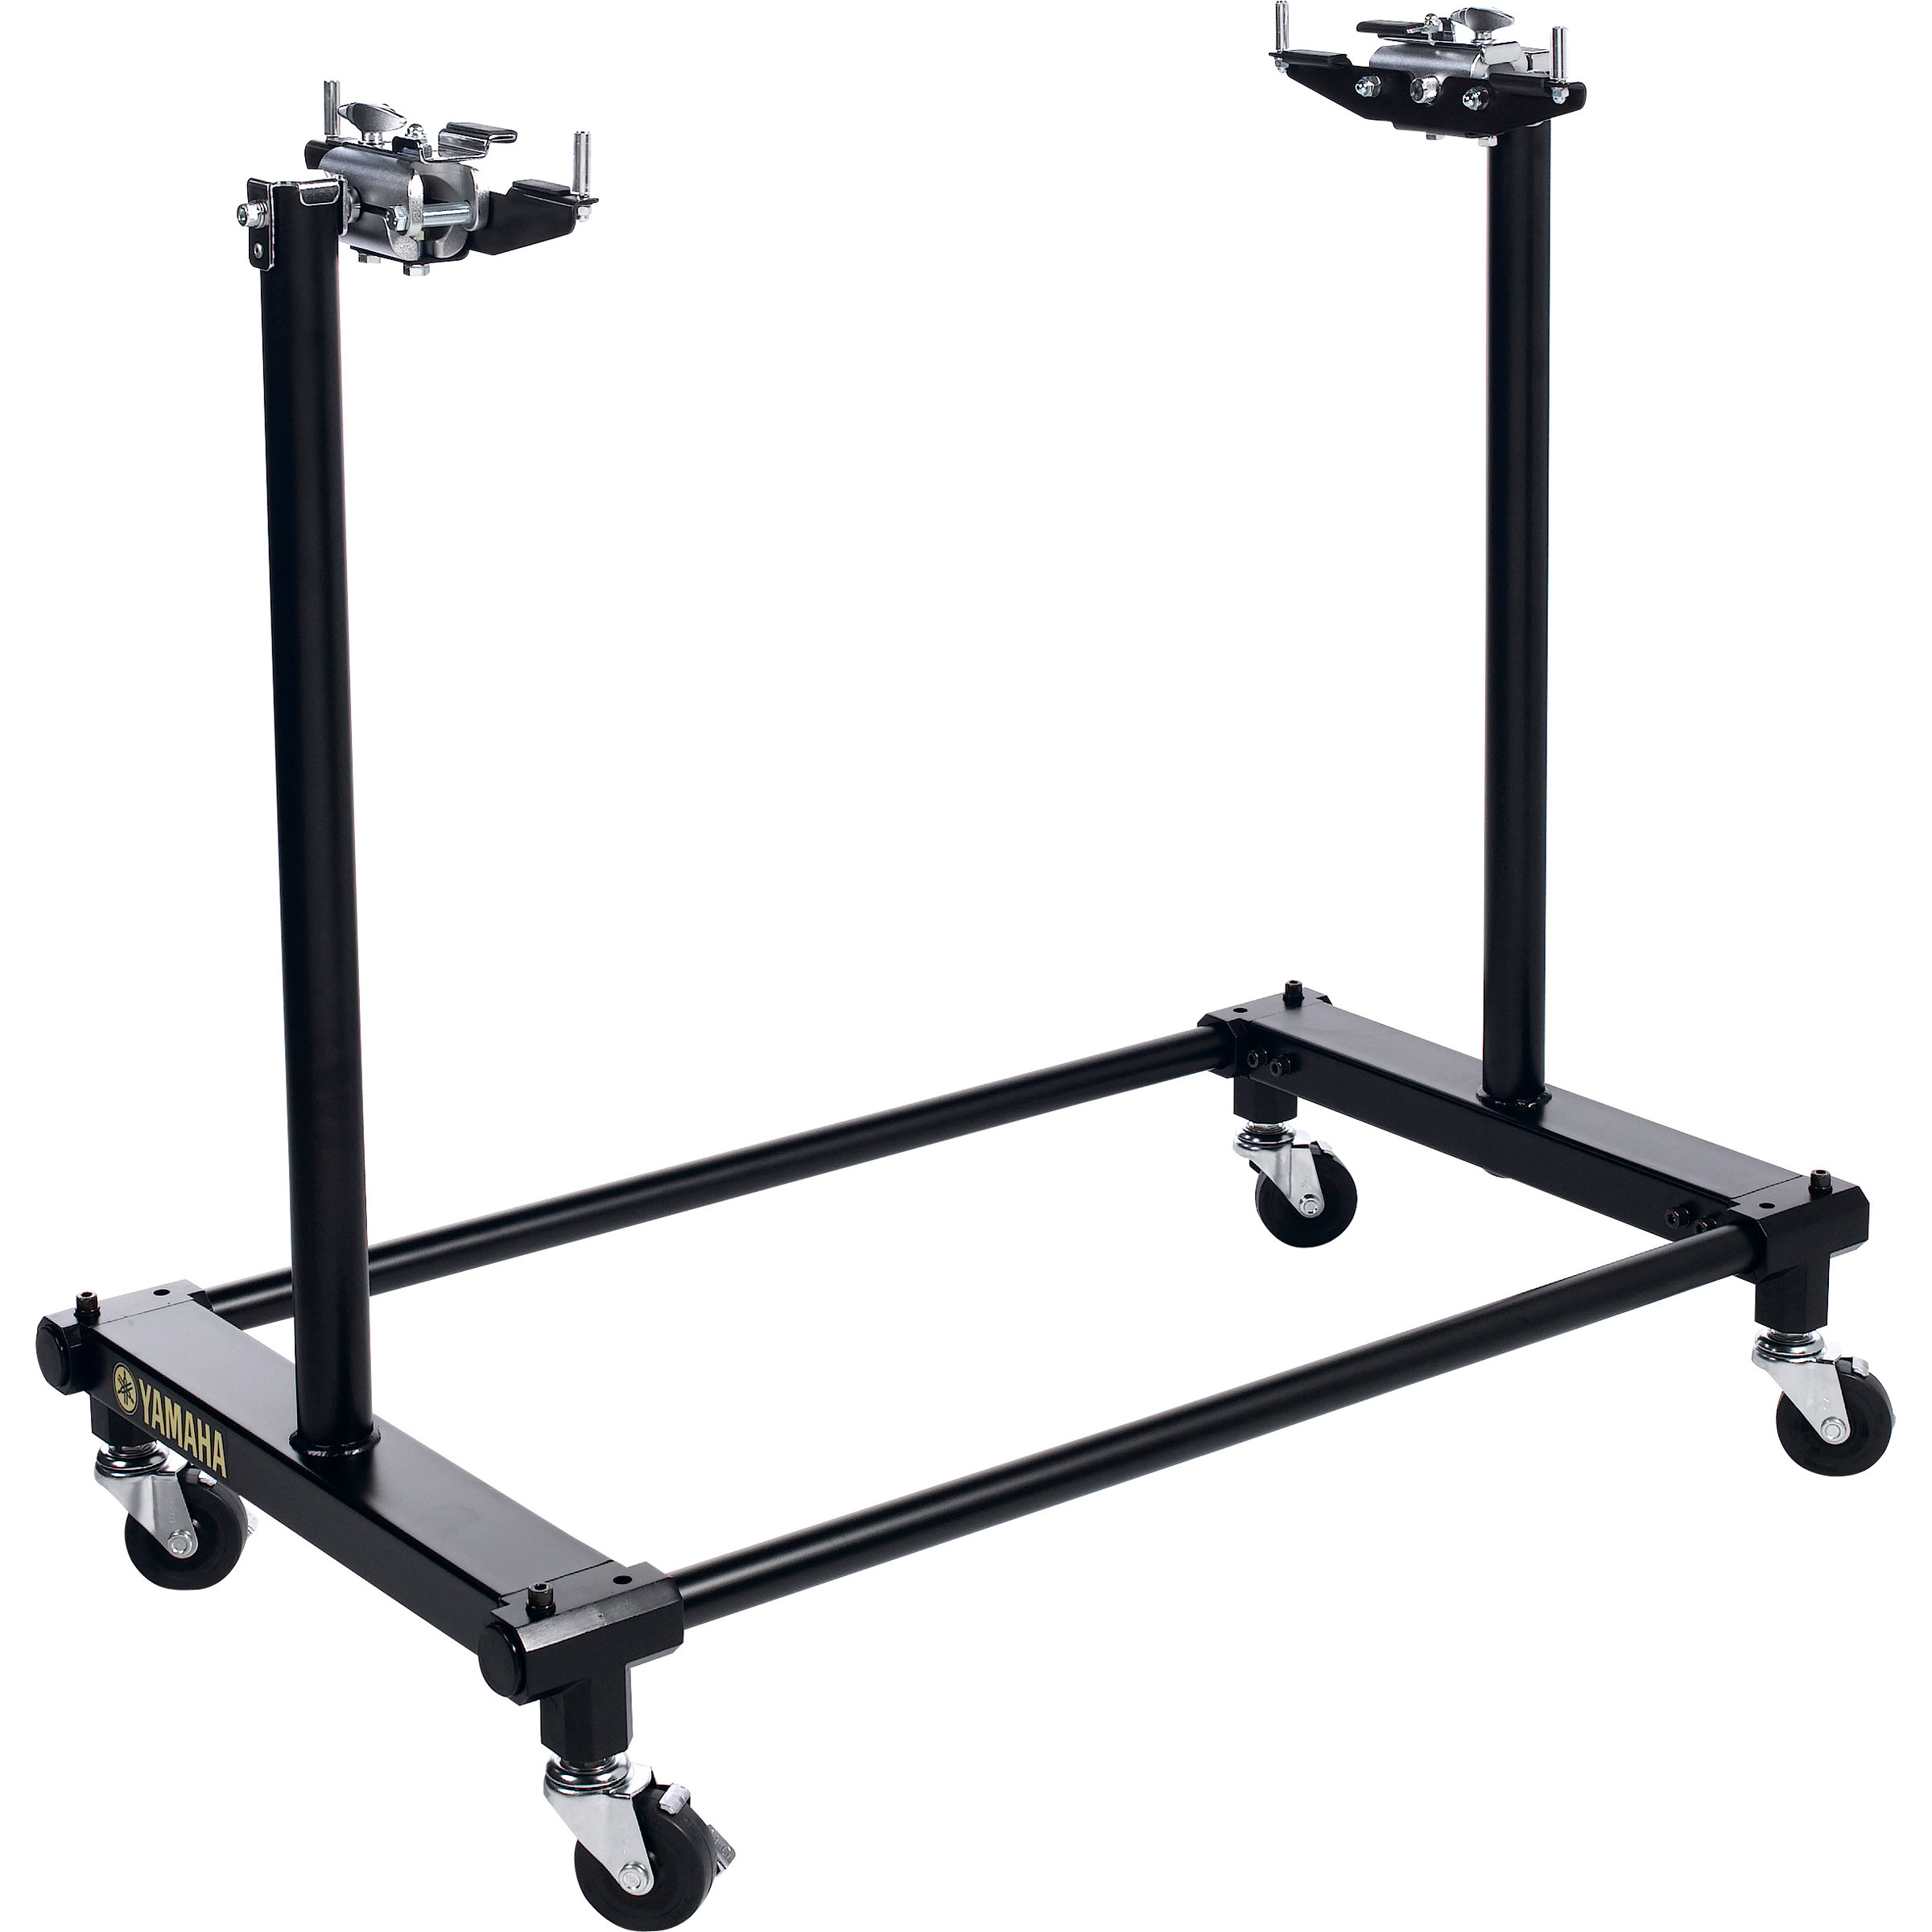 "Yamaha 7000 Series Tiltable Concert Bass Stand (28"" and 32"" Drums)"